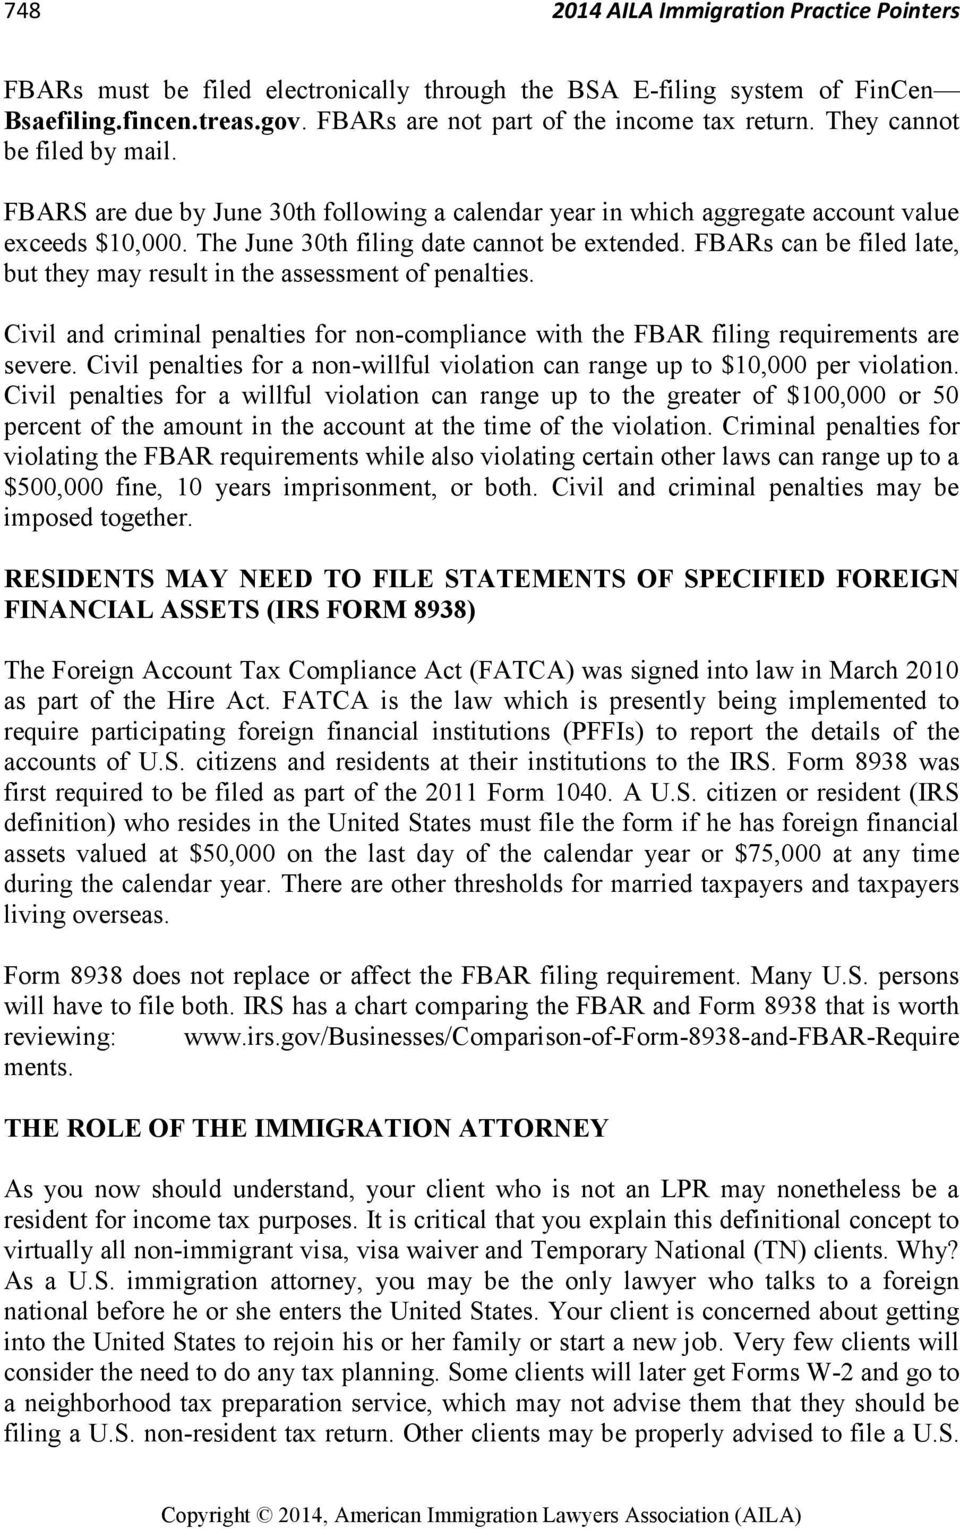 FBARs can be filed late, but they may result in the assessment of penalties. Civil and criminal penalties for non-compliance with the FBAR filing requirements are severe.